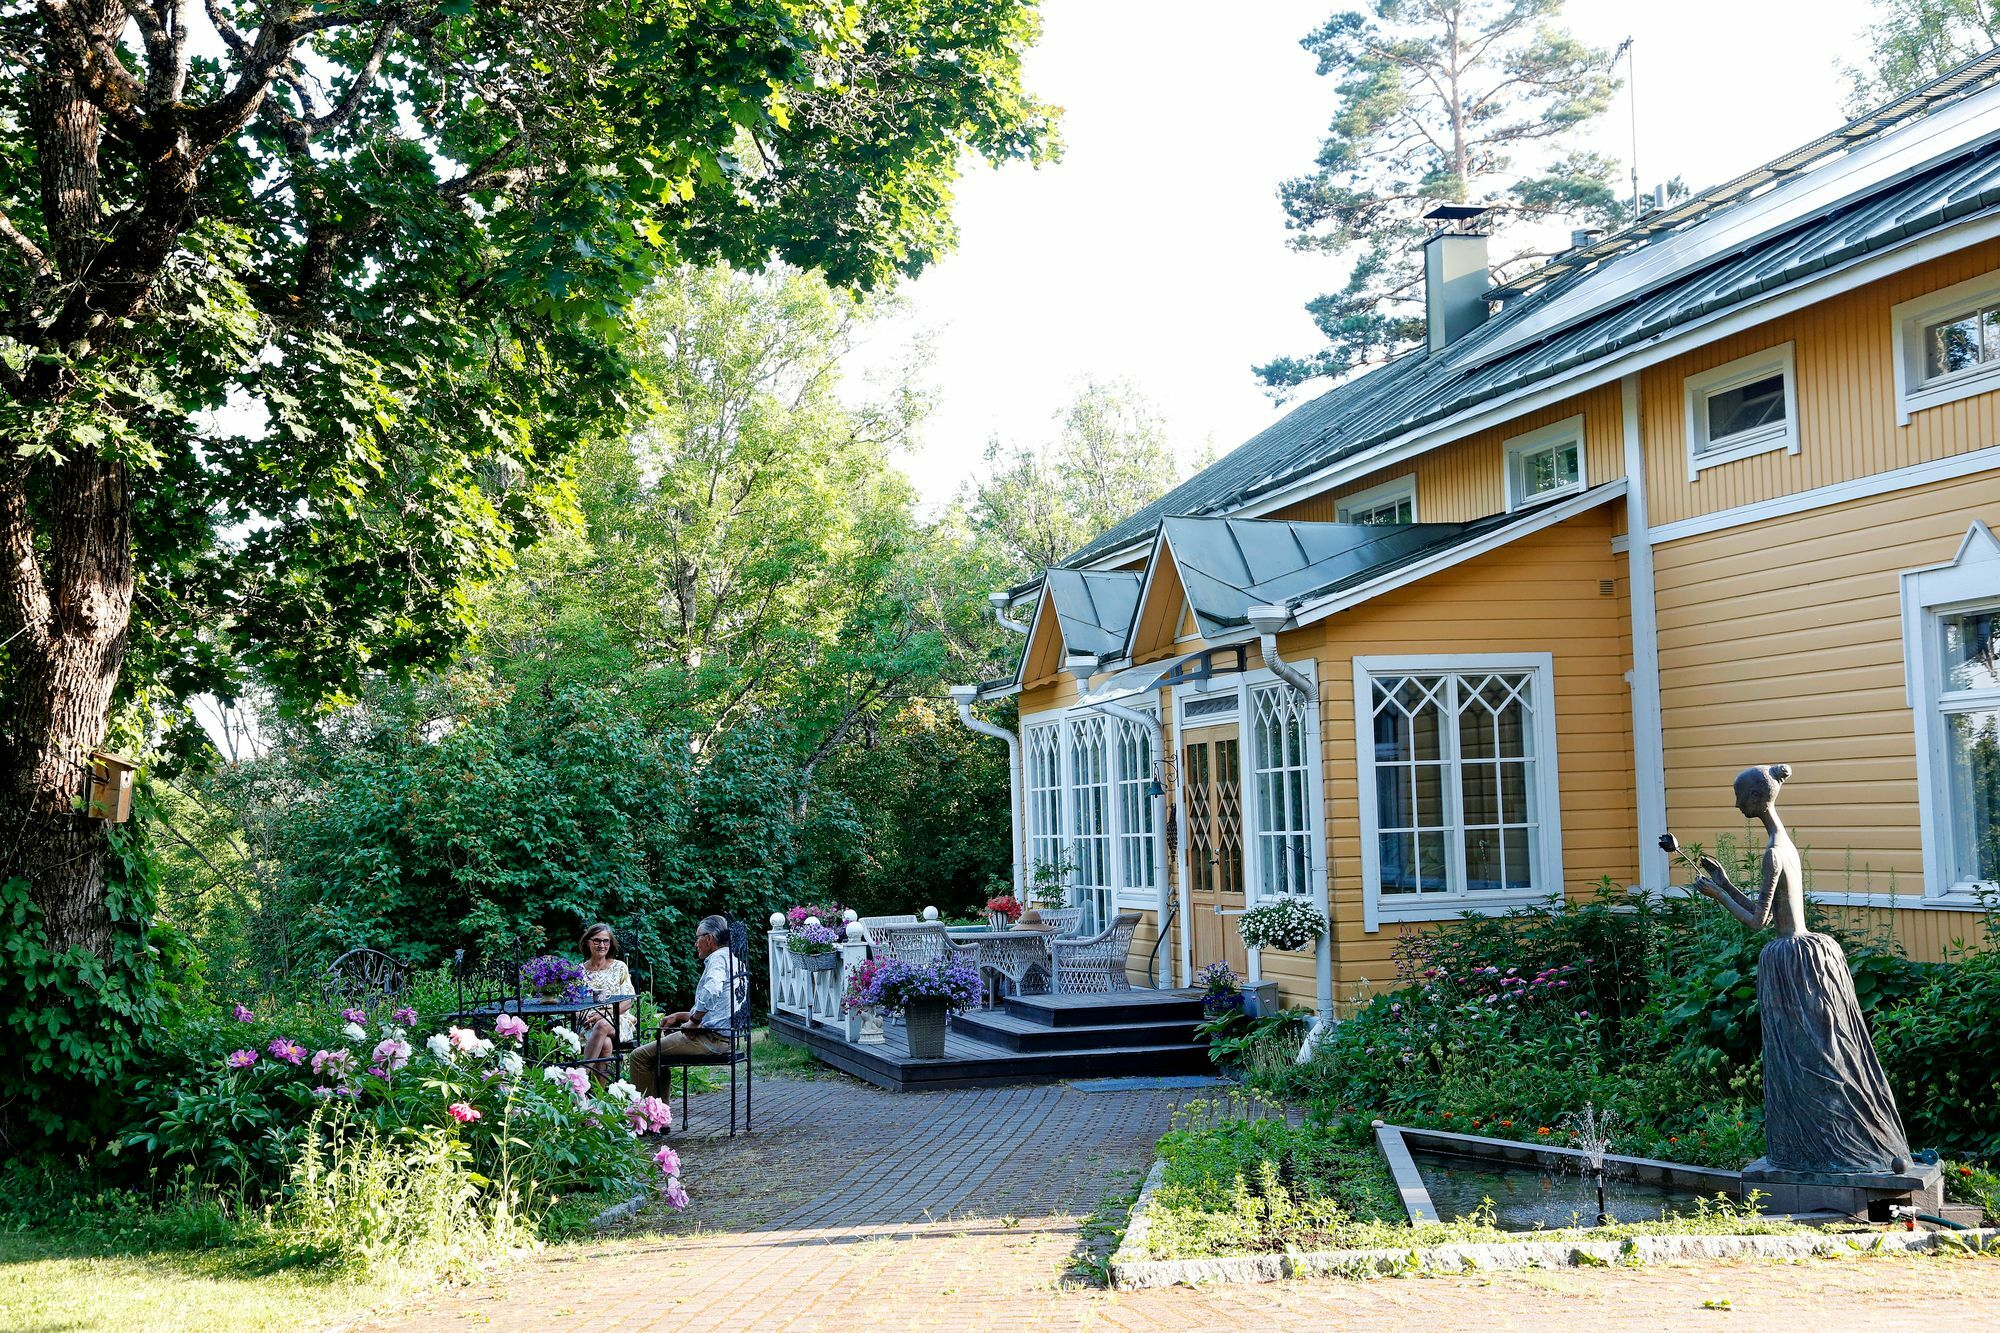 In front of the house there is a living group surrounded by flowers and art.